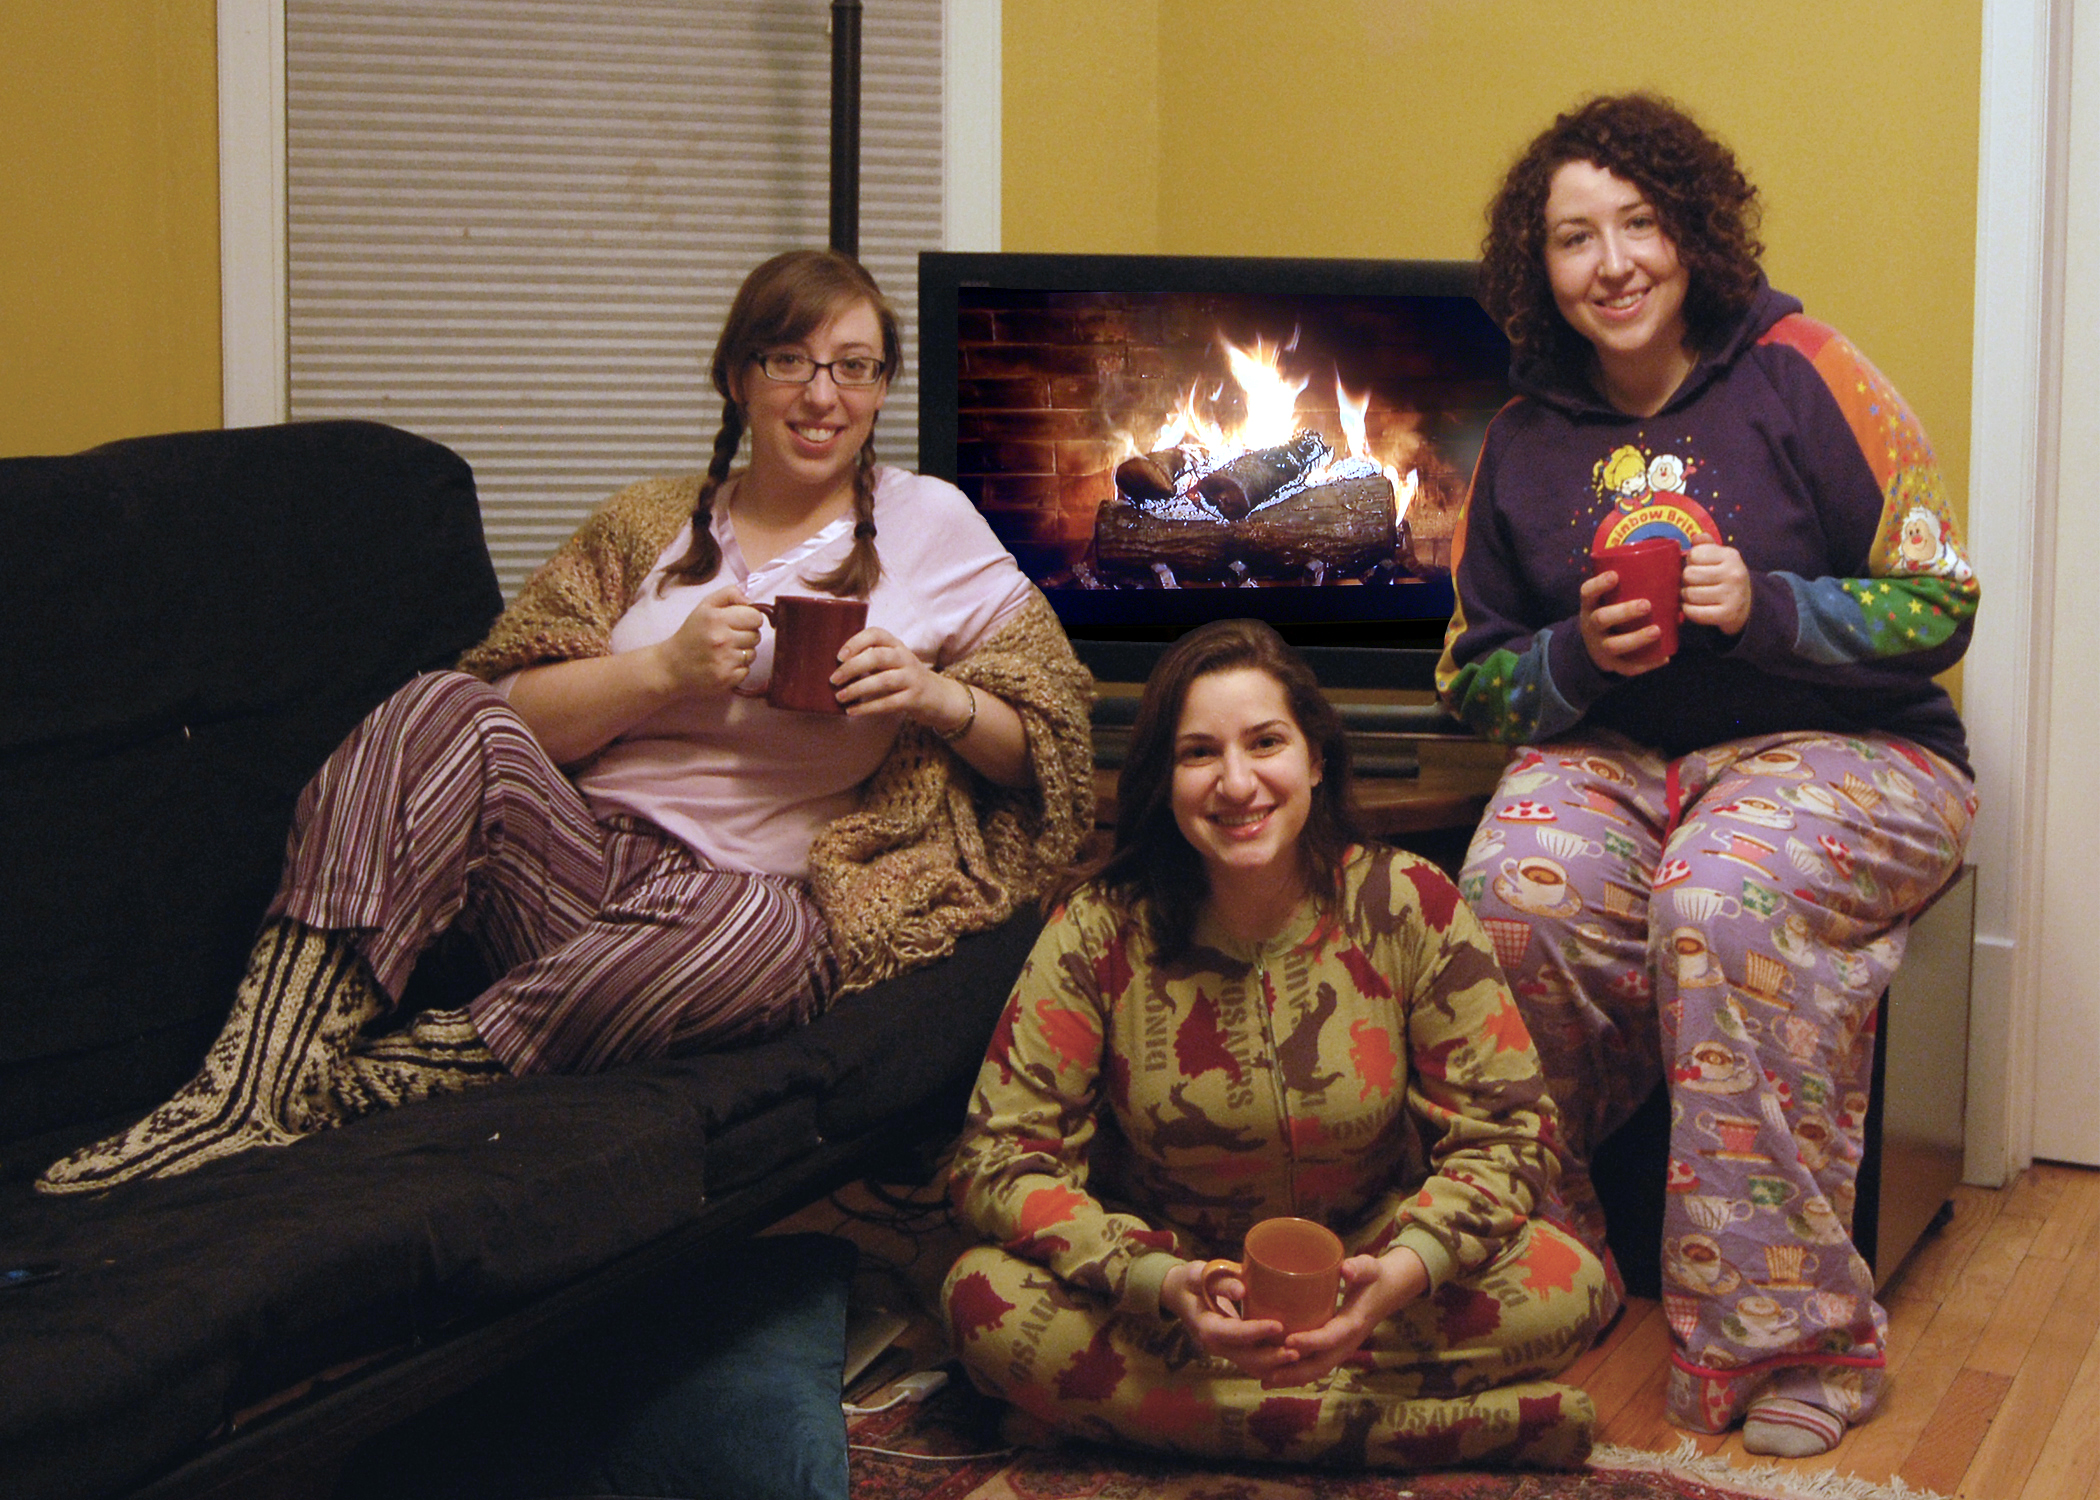 Our holiday card for 2012. Clearly, Rebecca, Yonit and I are sporting our finest patterns!